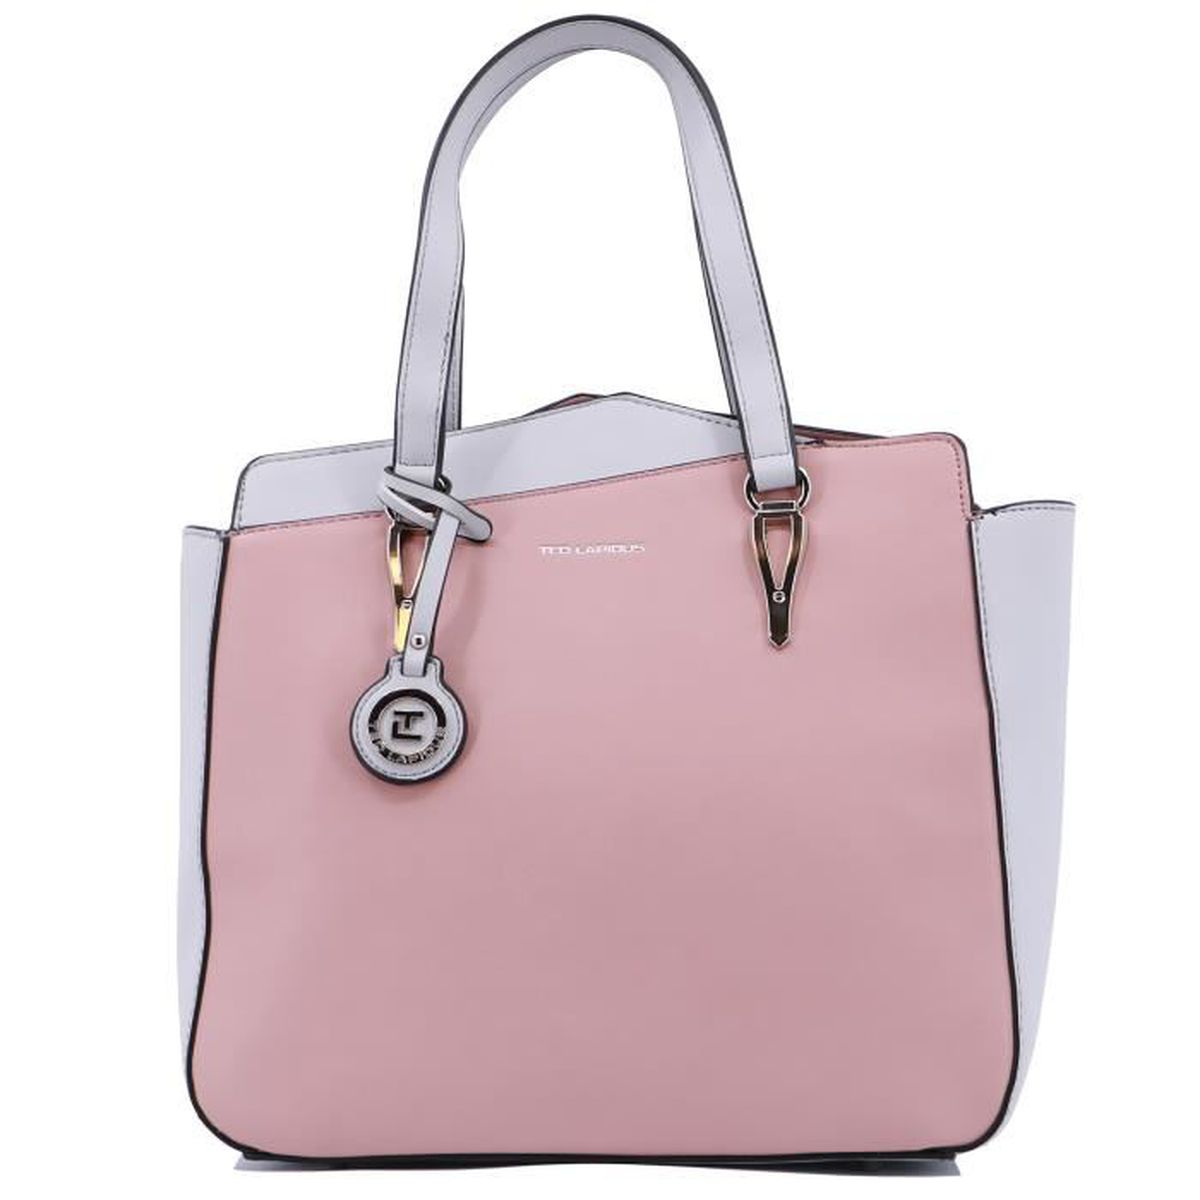 SAC SHOPPING Sac shopping Ted Lapidus Oxana synthétique aspect